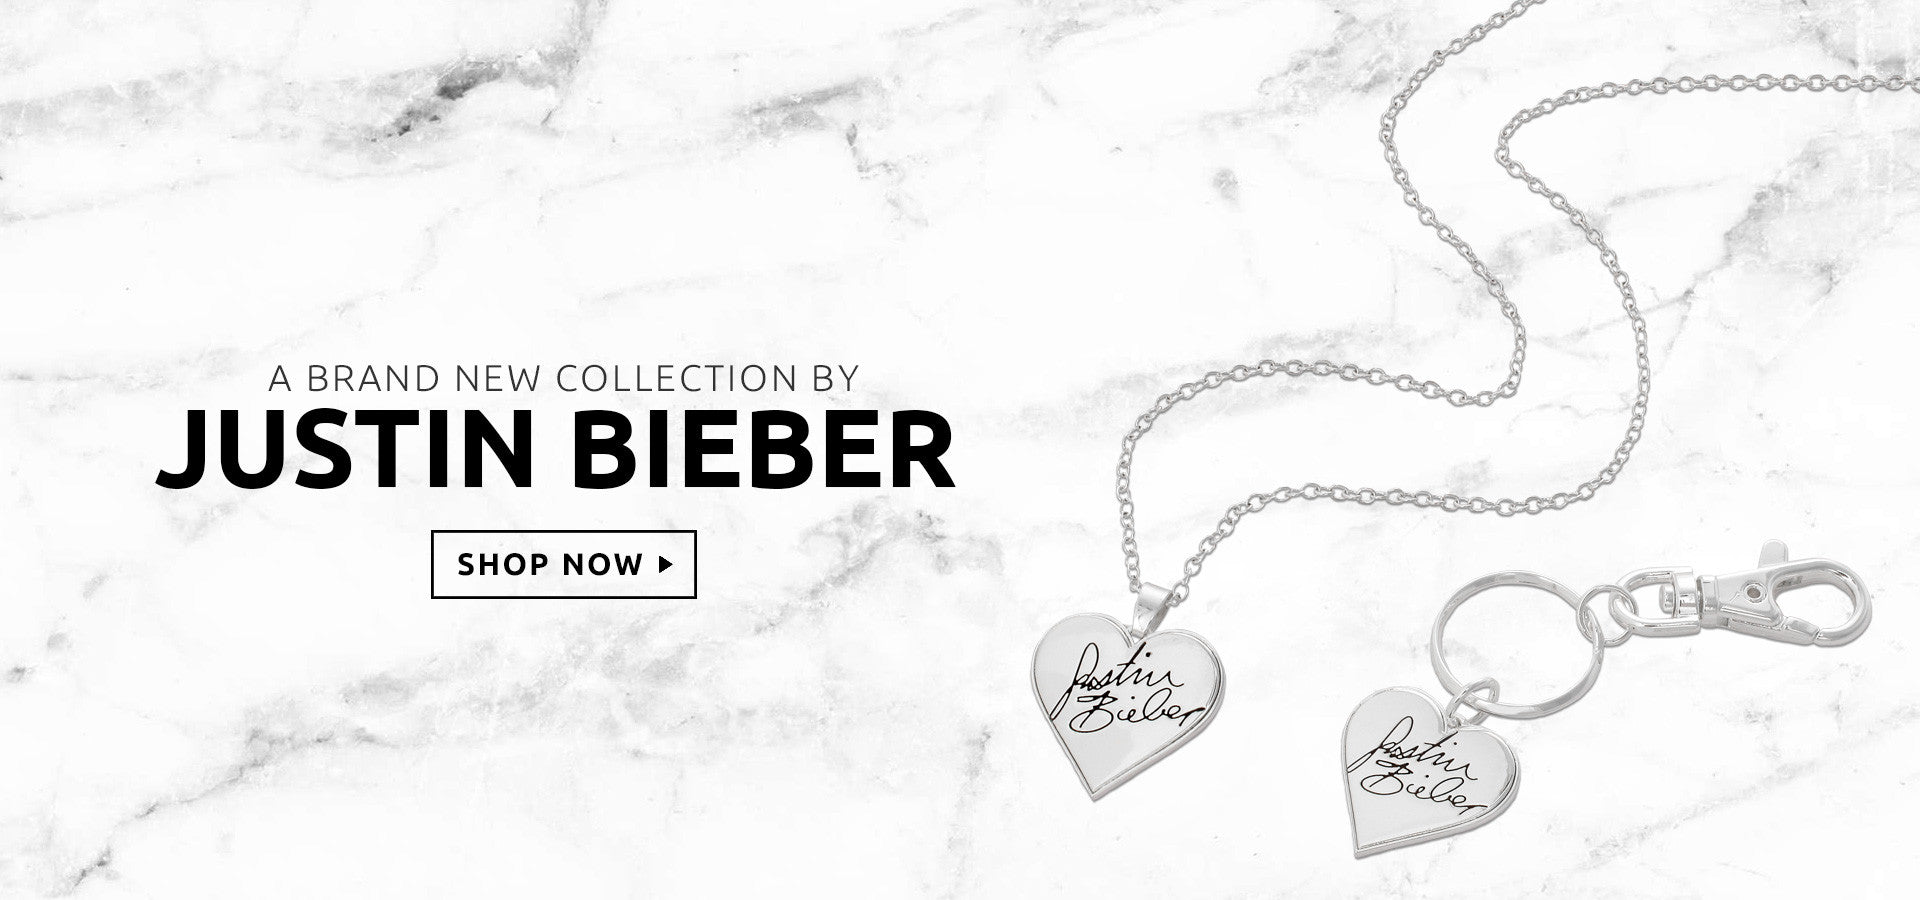 Justin Bieber official jewellery purpose tour merch necklace bracelet